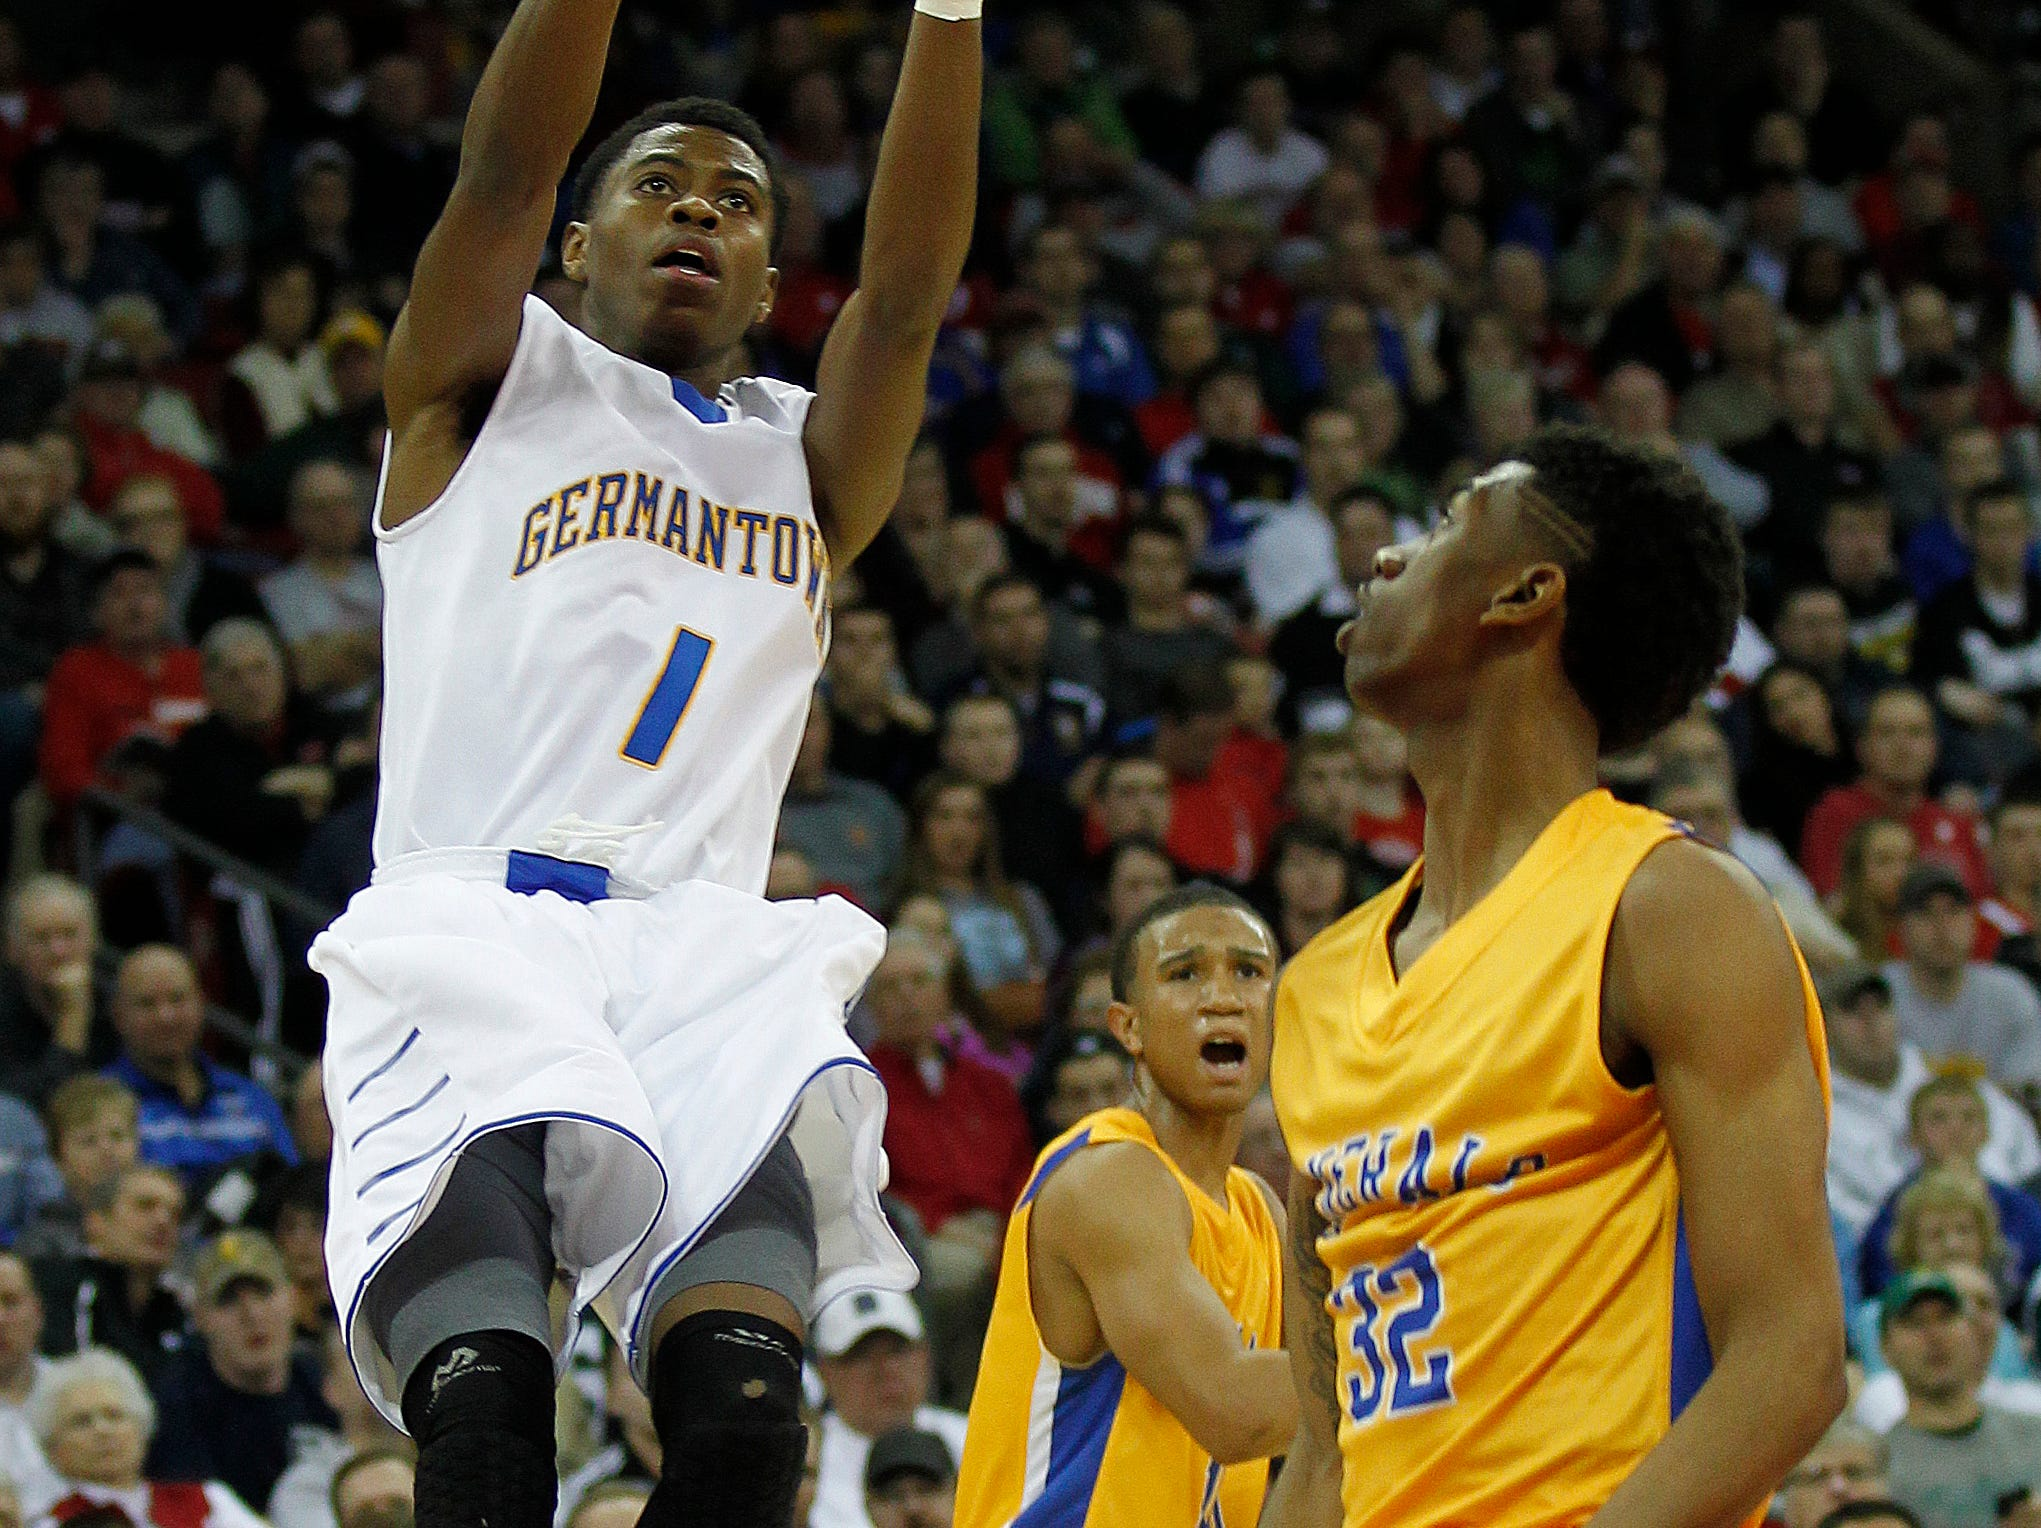 Germantown Warhawks' Lamonte' Bearden goes up for a shot against Milwaukee King Generals' Diamontae Freeman in the third period of the 2014 Division 1 WIAA Boys Basketball Tournament being held at the Kohl Center.